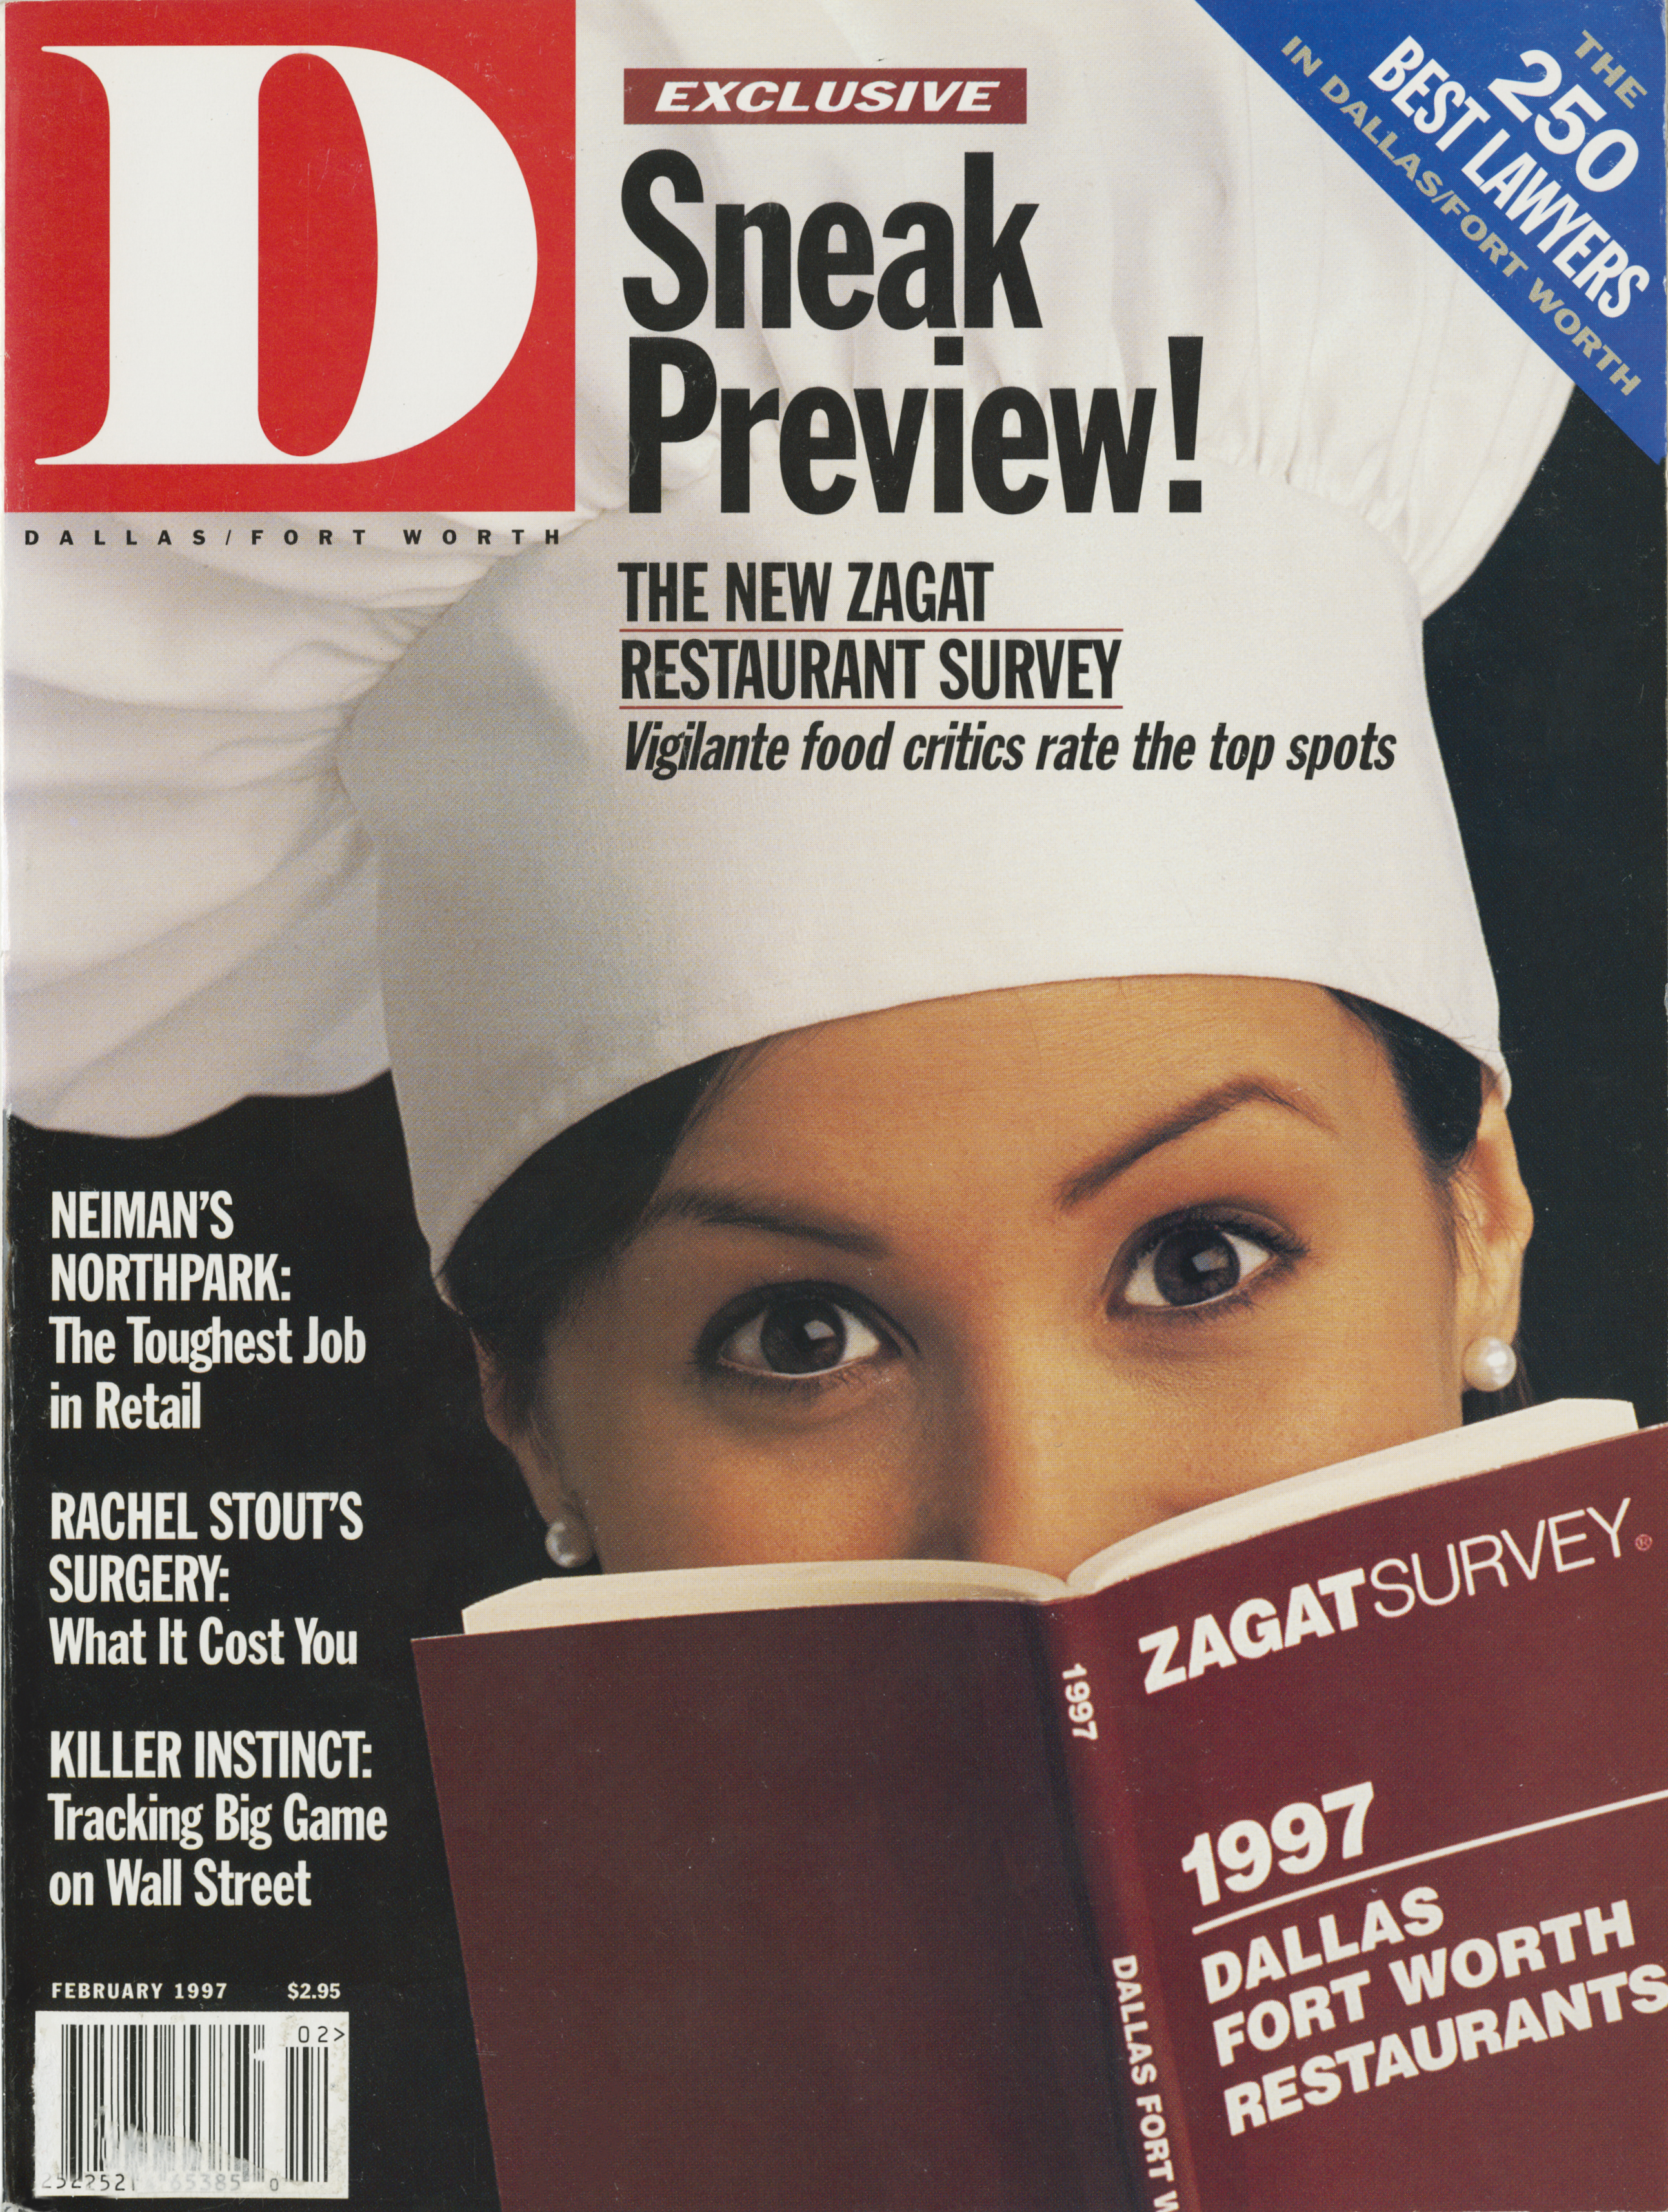 February 1997 cover